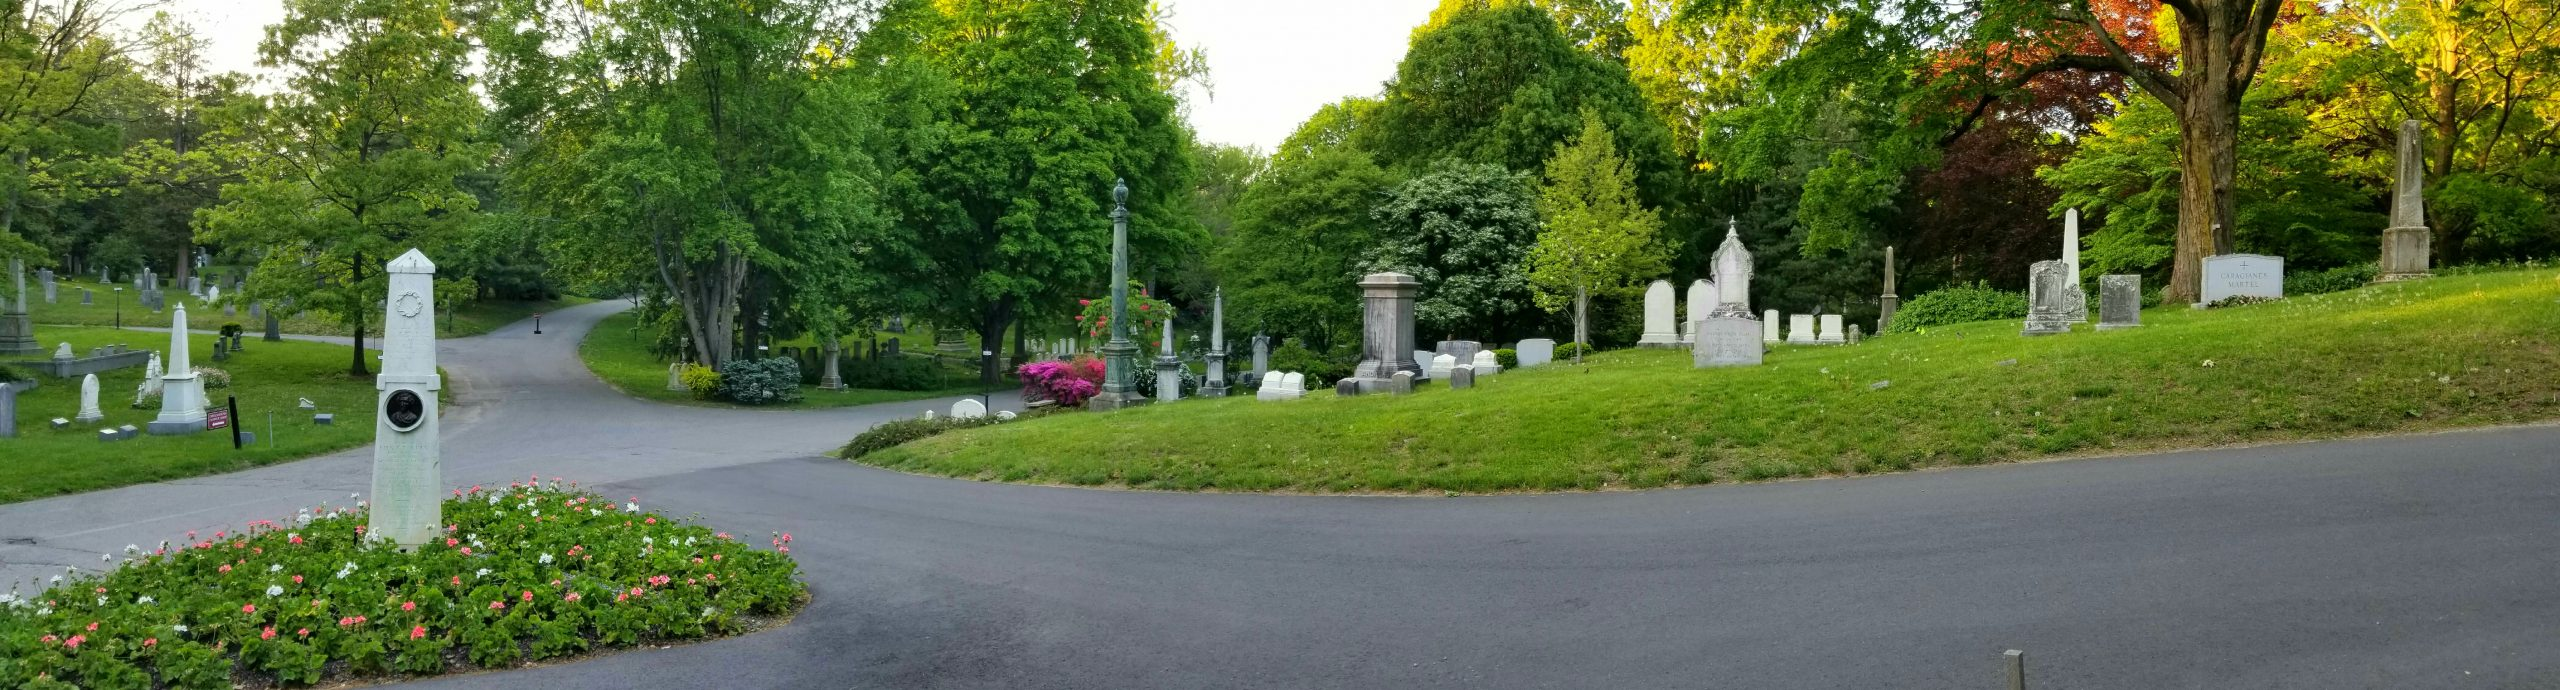 A rolling landscape with mature canopy trees and ornate memorials.